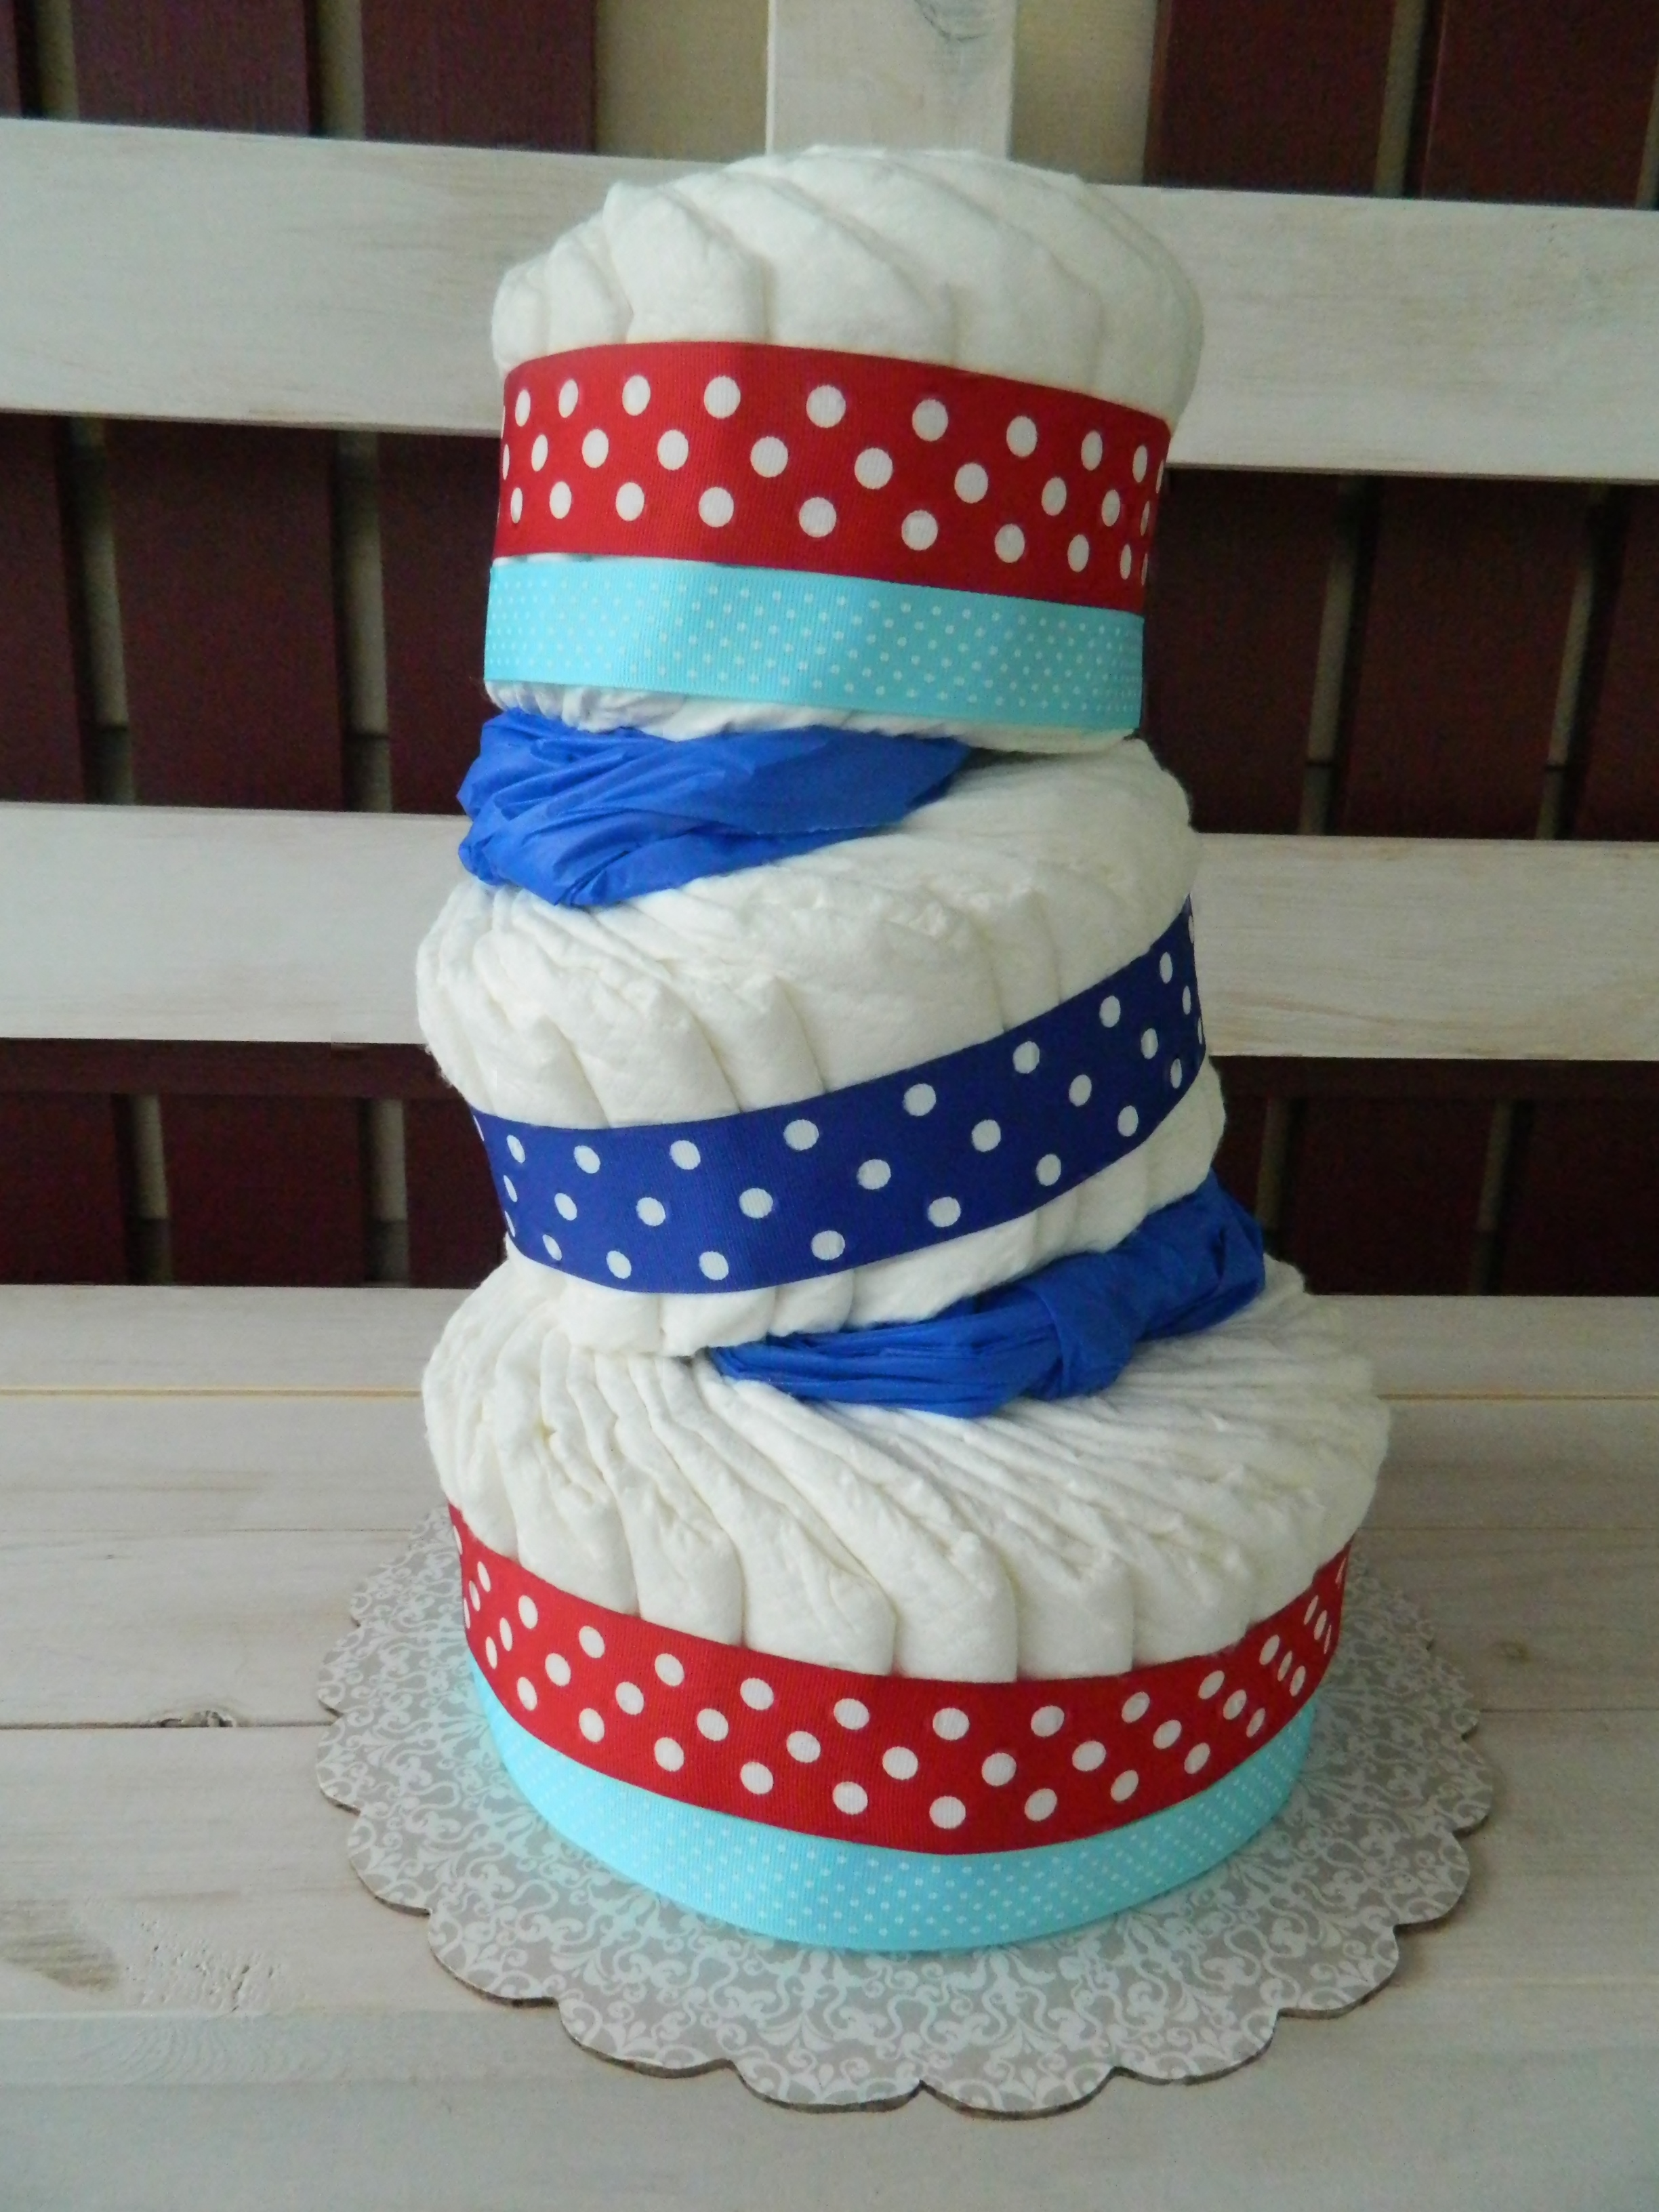 Diaper cake tutorial plus a dr seuss baby shower update the ok first i have to give a shout out to donya from cherry bon bons she has tons of party invitations and other items to help you create an adorable event publicscrutiny Image collections